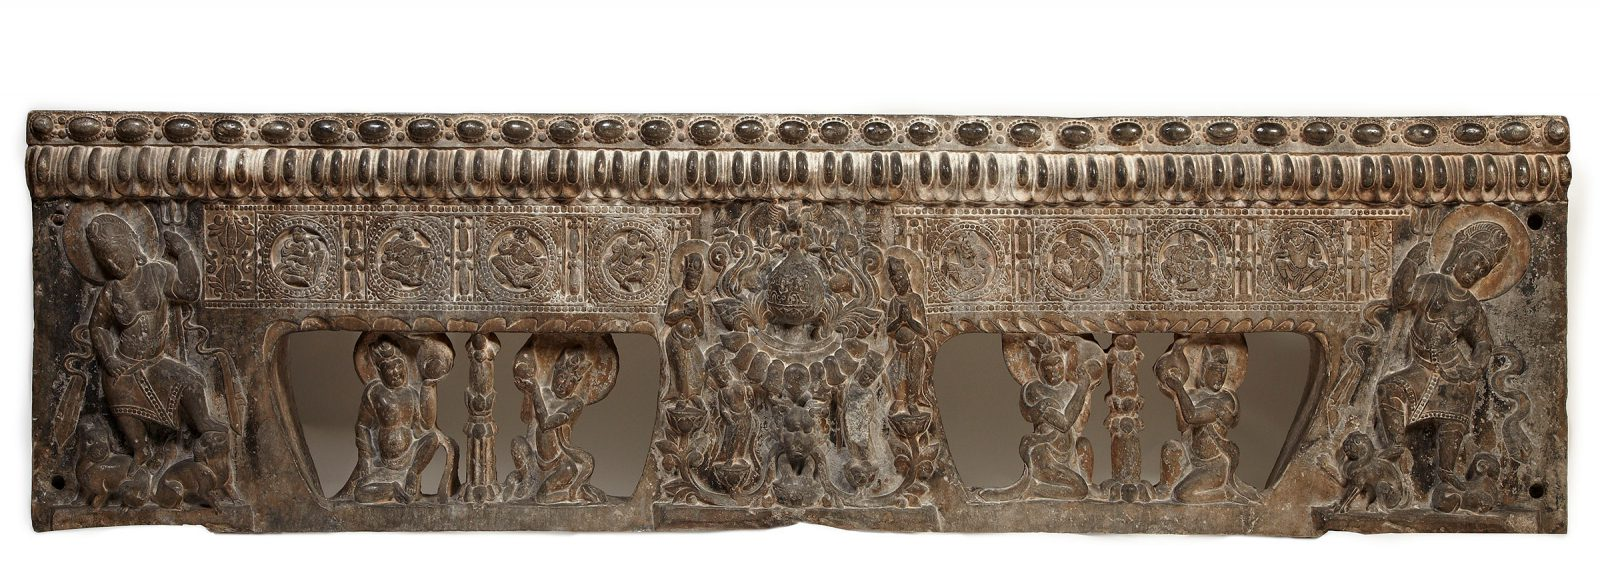 This richly carved font support of a Funerary Bed from Anyang shows figures with halos as well as representations of musicians.